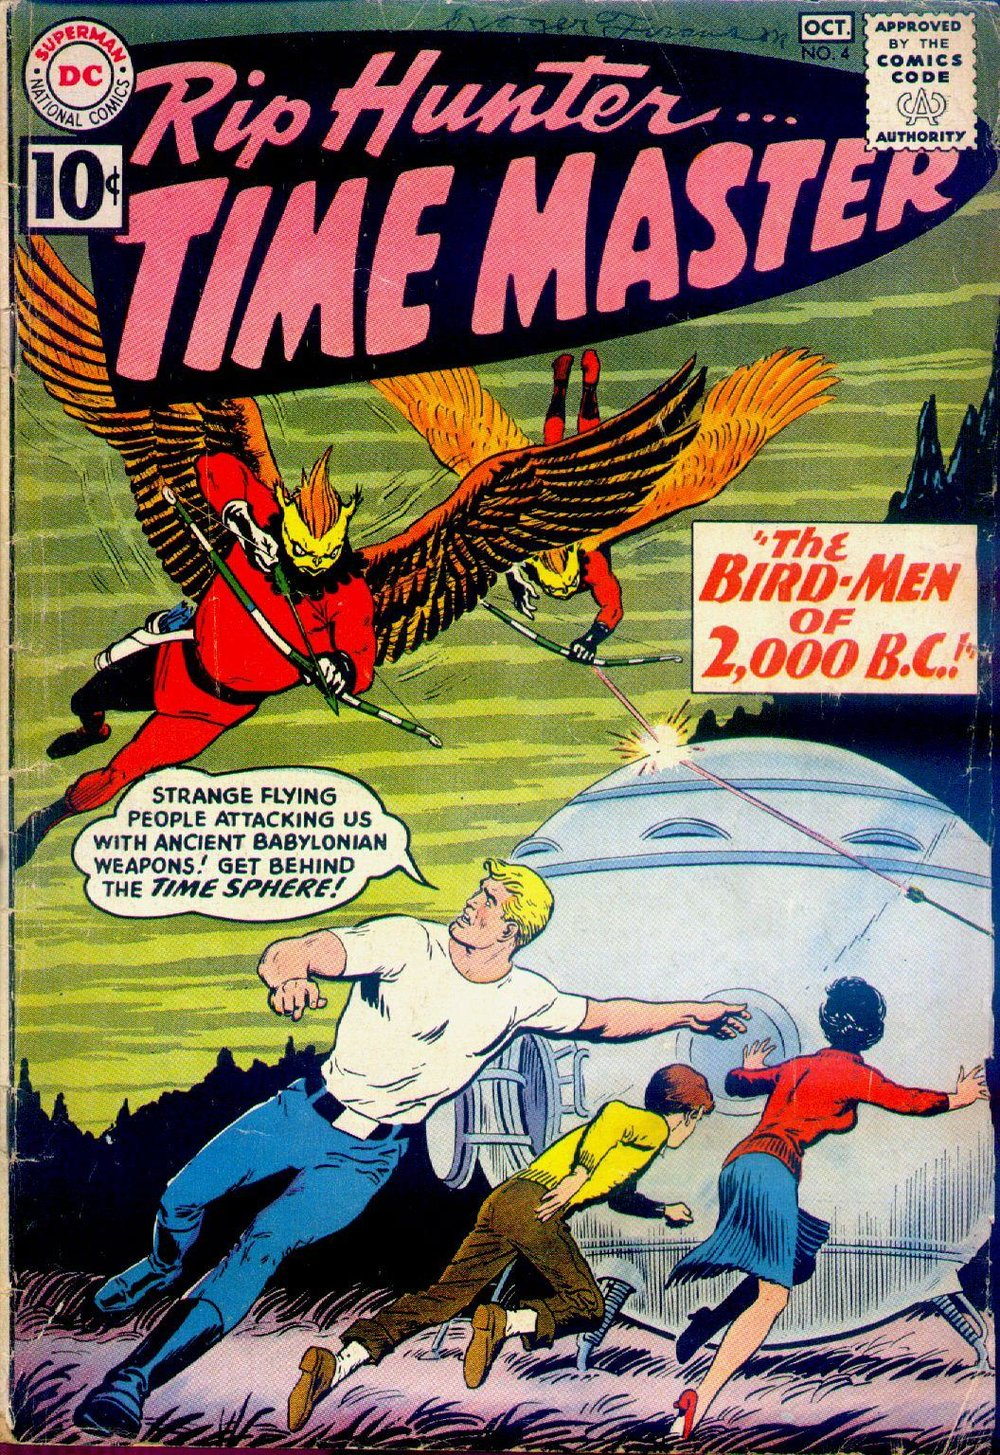 Rip Hunter... Time Master (1961) #4, cover by Nick Cardy.